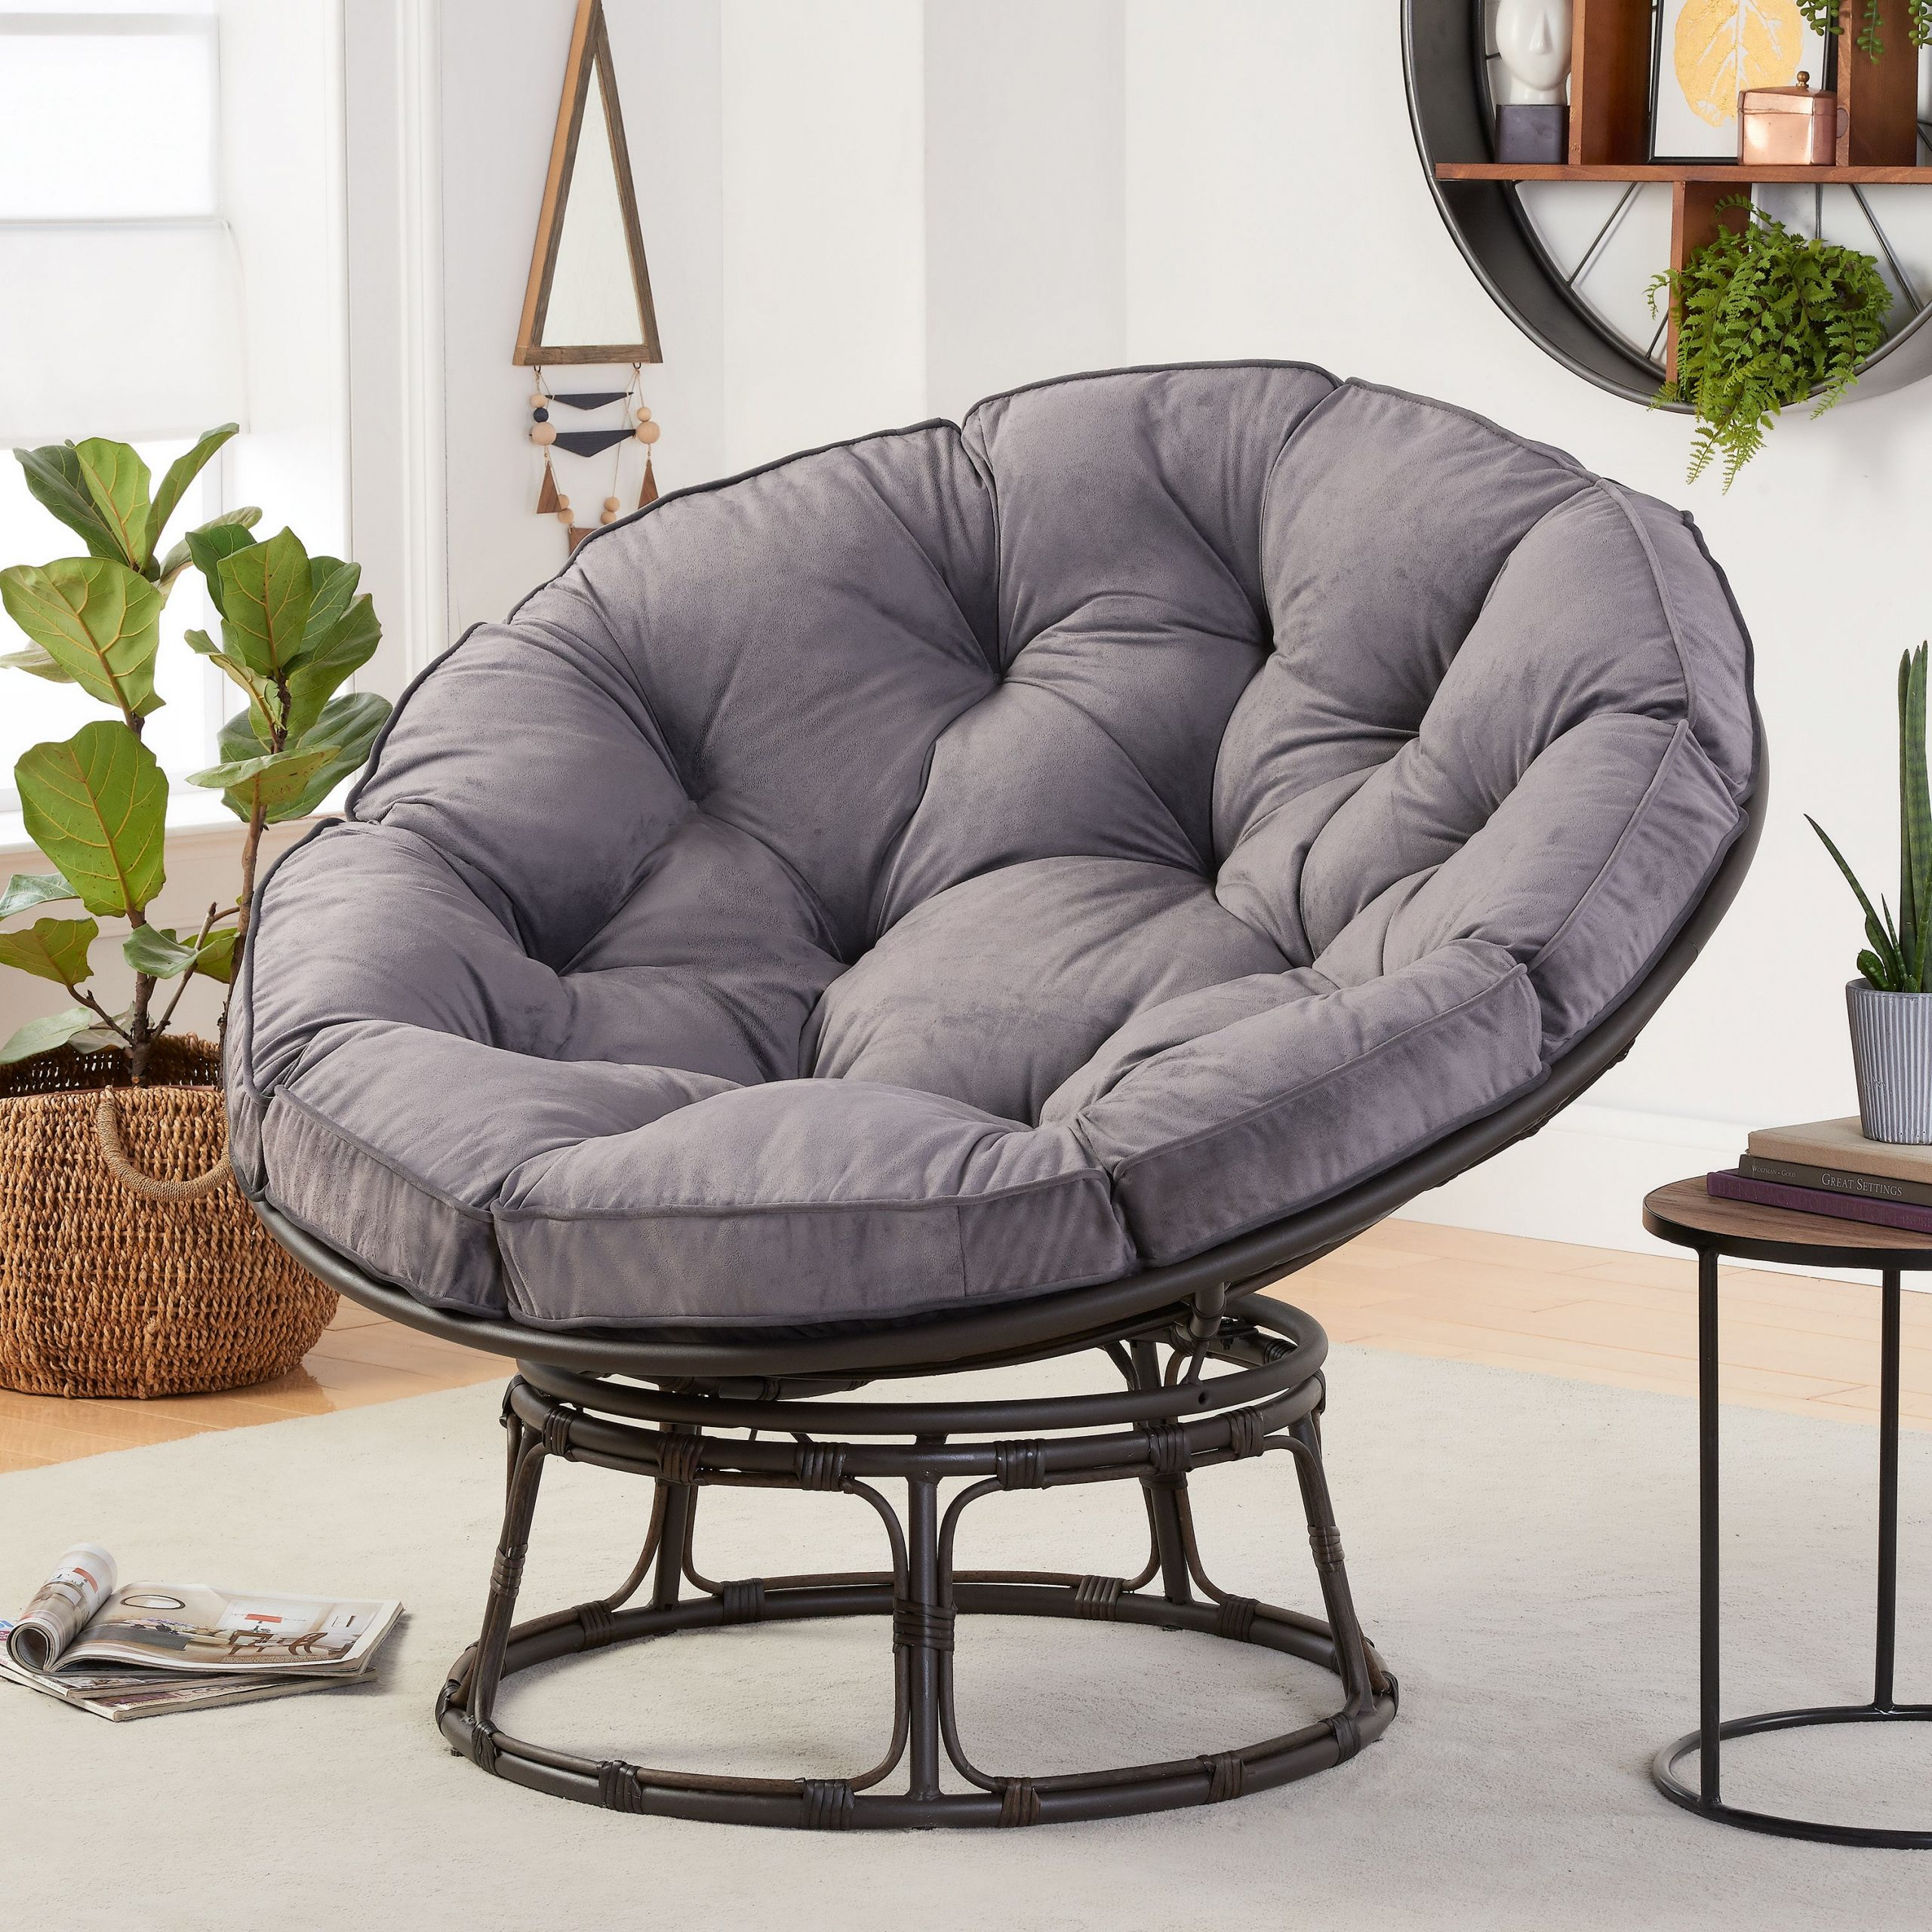 Better Homes & Gardens Papasan Chair With Fabric Cushion, Charcoal Gray – Walmart With Decker Papasan Chairs (View 4 of 15)